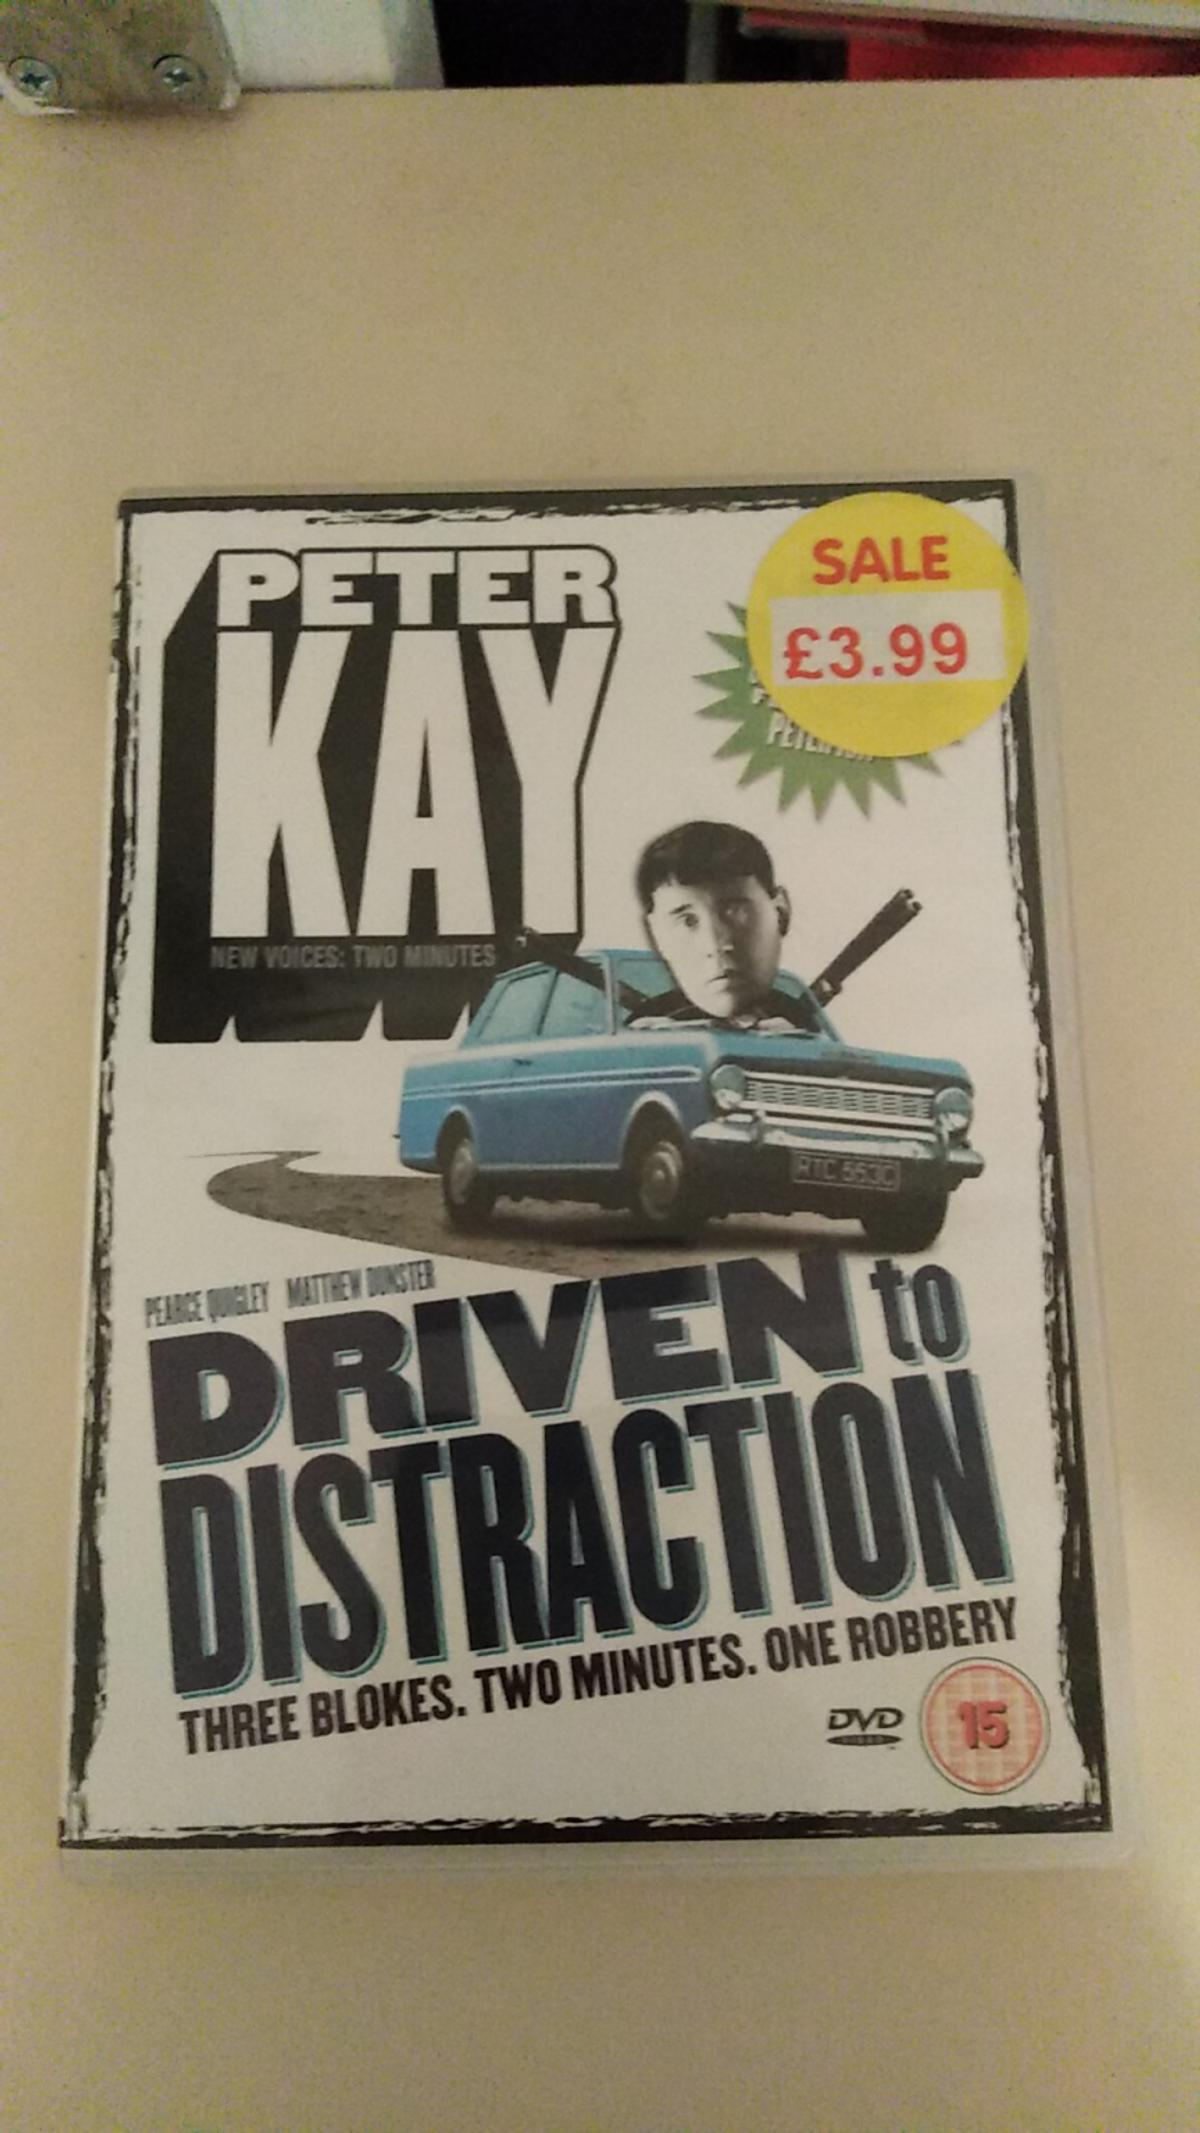 Peter kay driven to distraction dvd  As seen in pic Sold as seen  50p  Collection from Sutton-in-Ashfield No posting